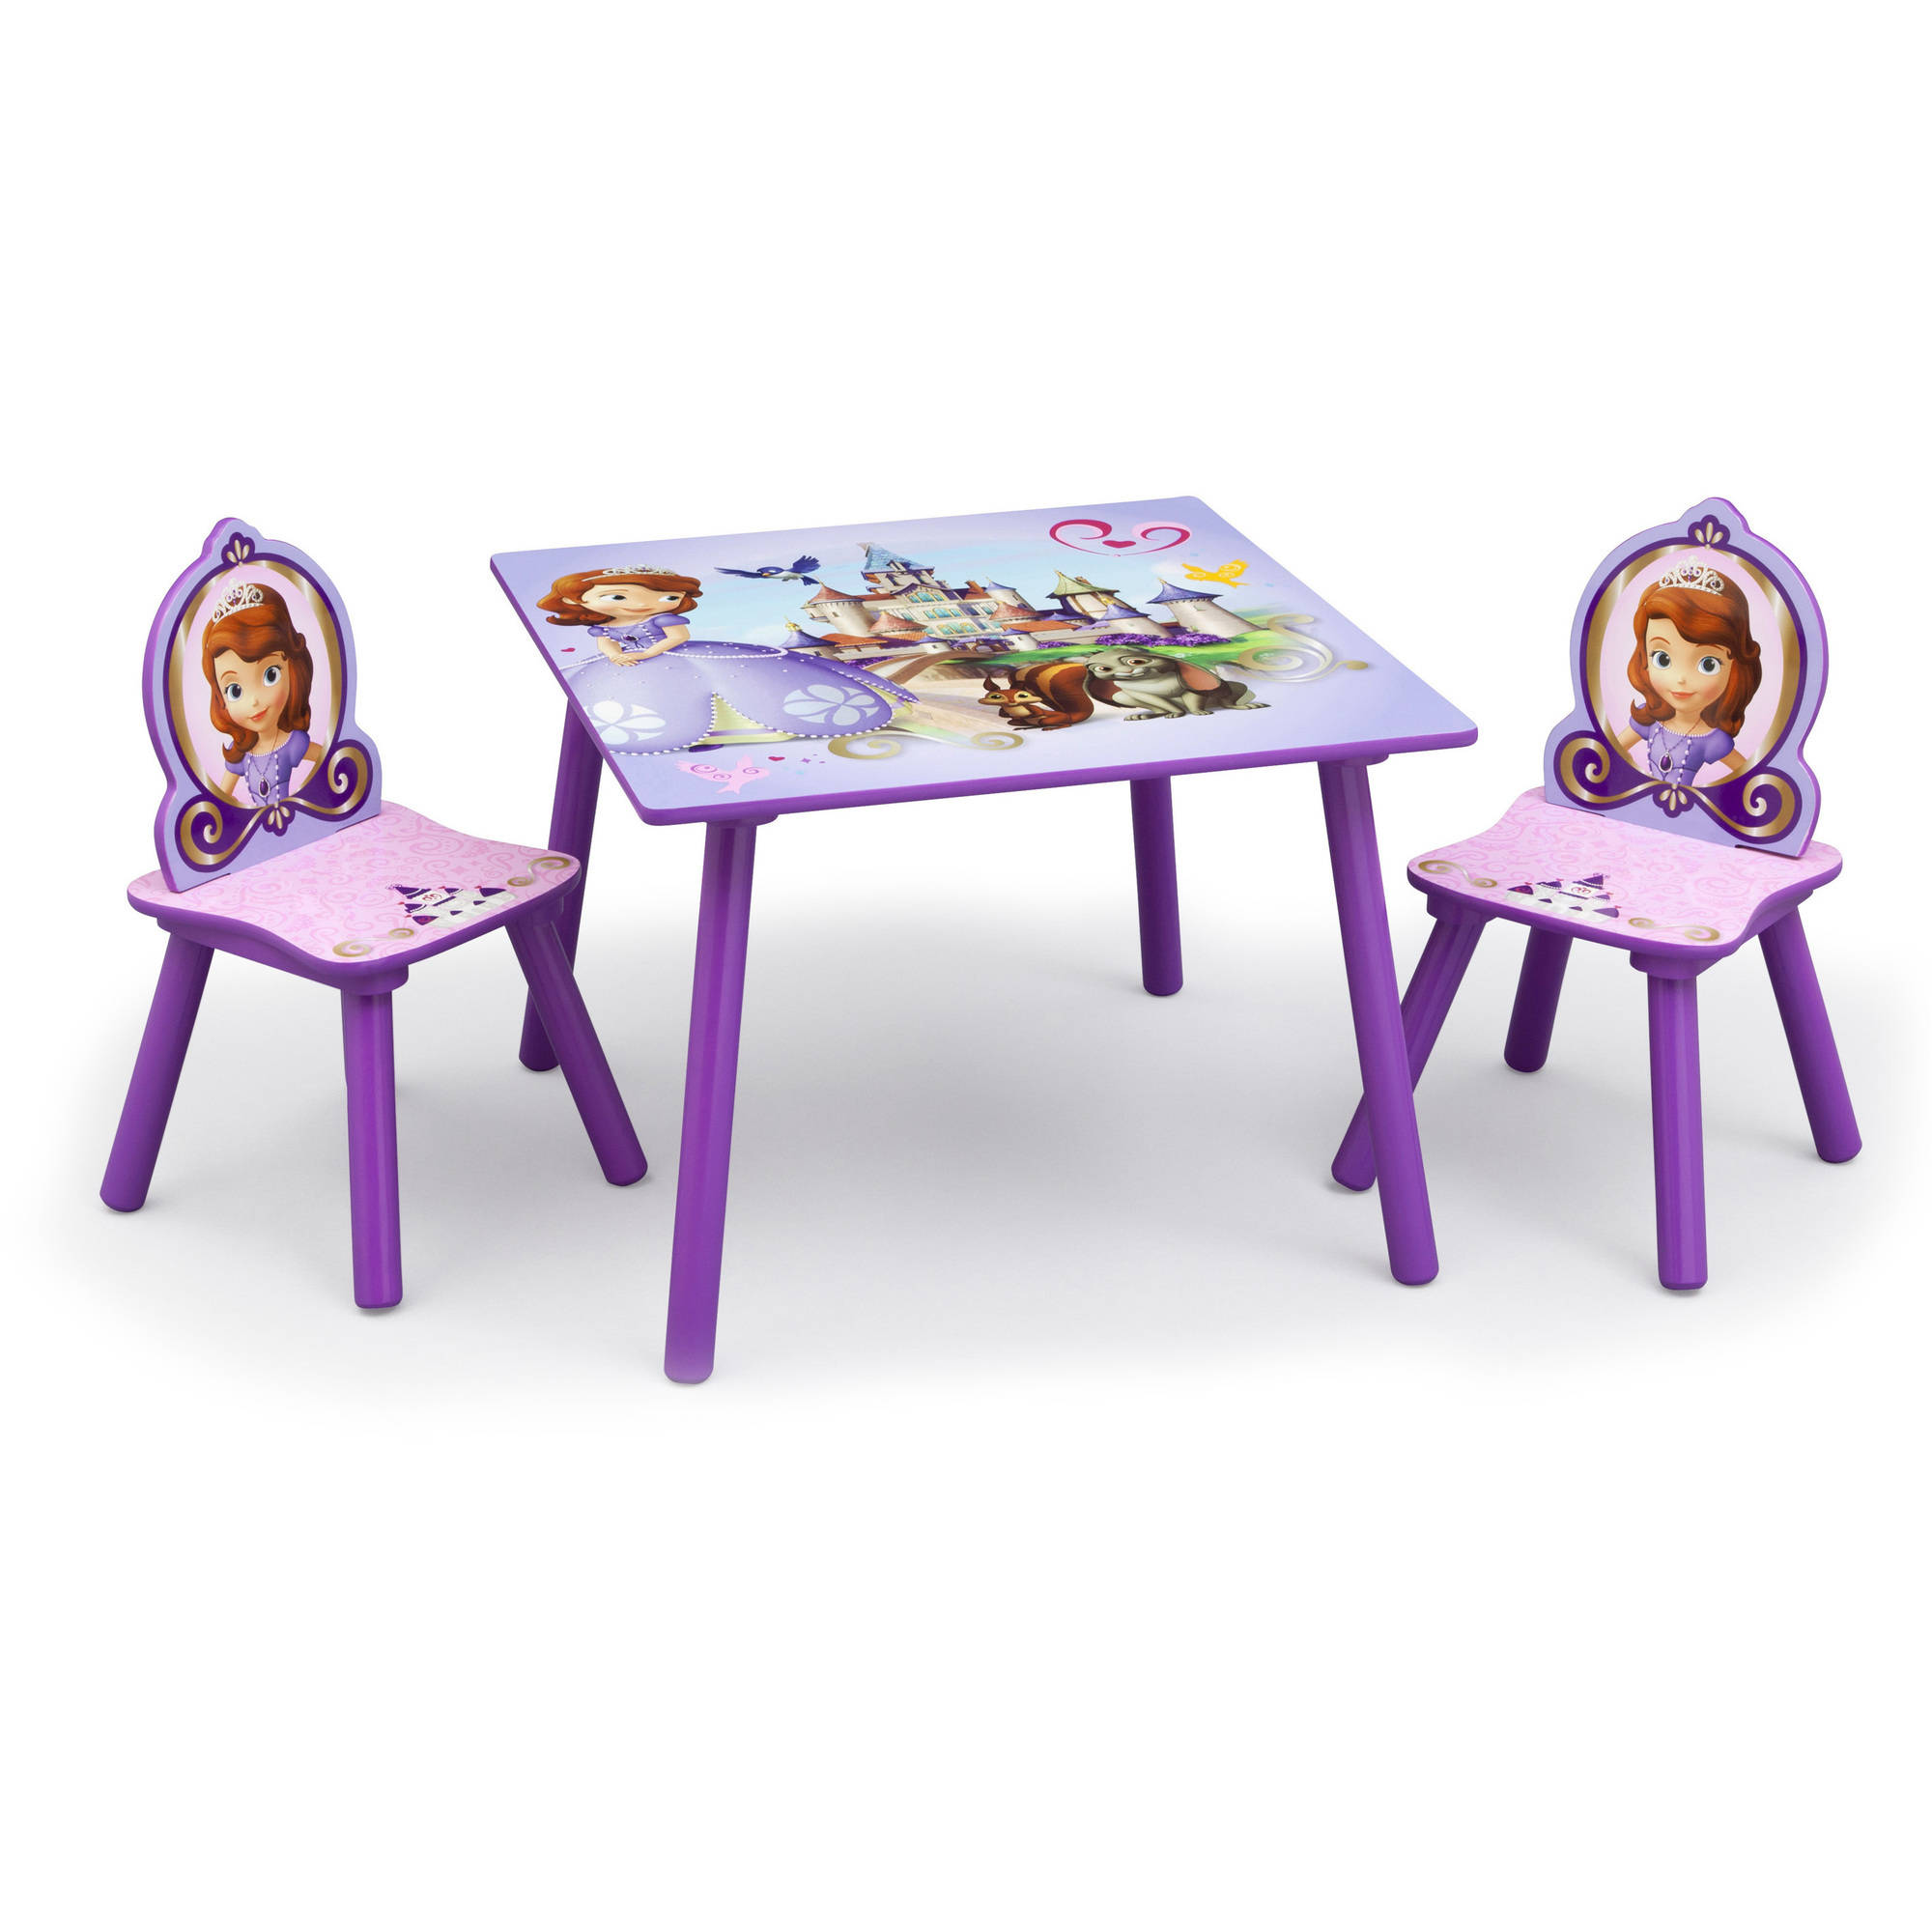 Disney Jr. Sofia the First Table and Chairs Set, Lavender